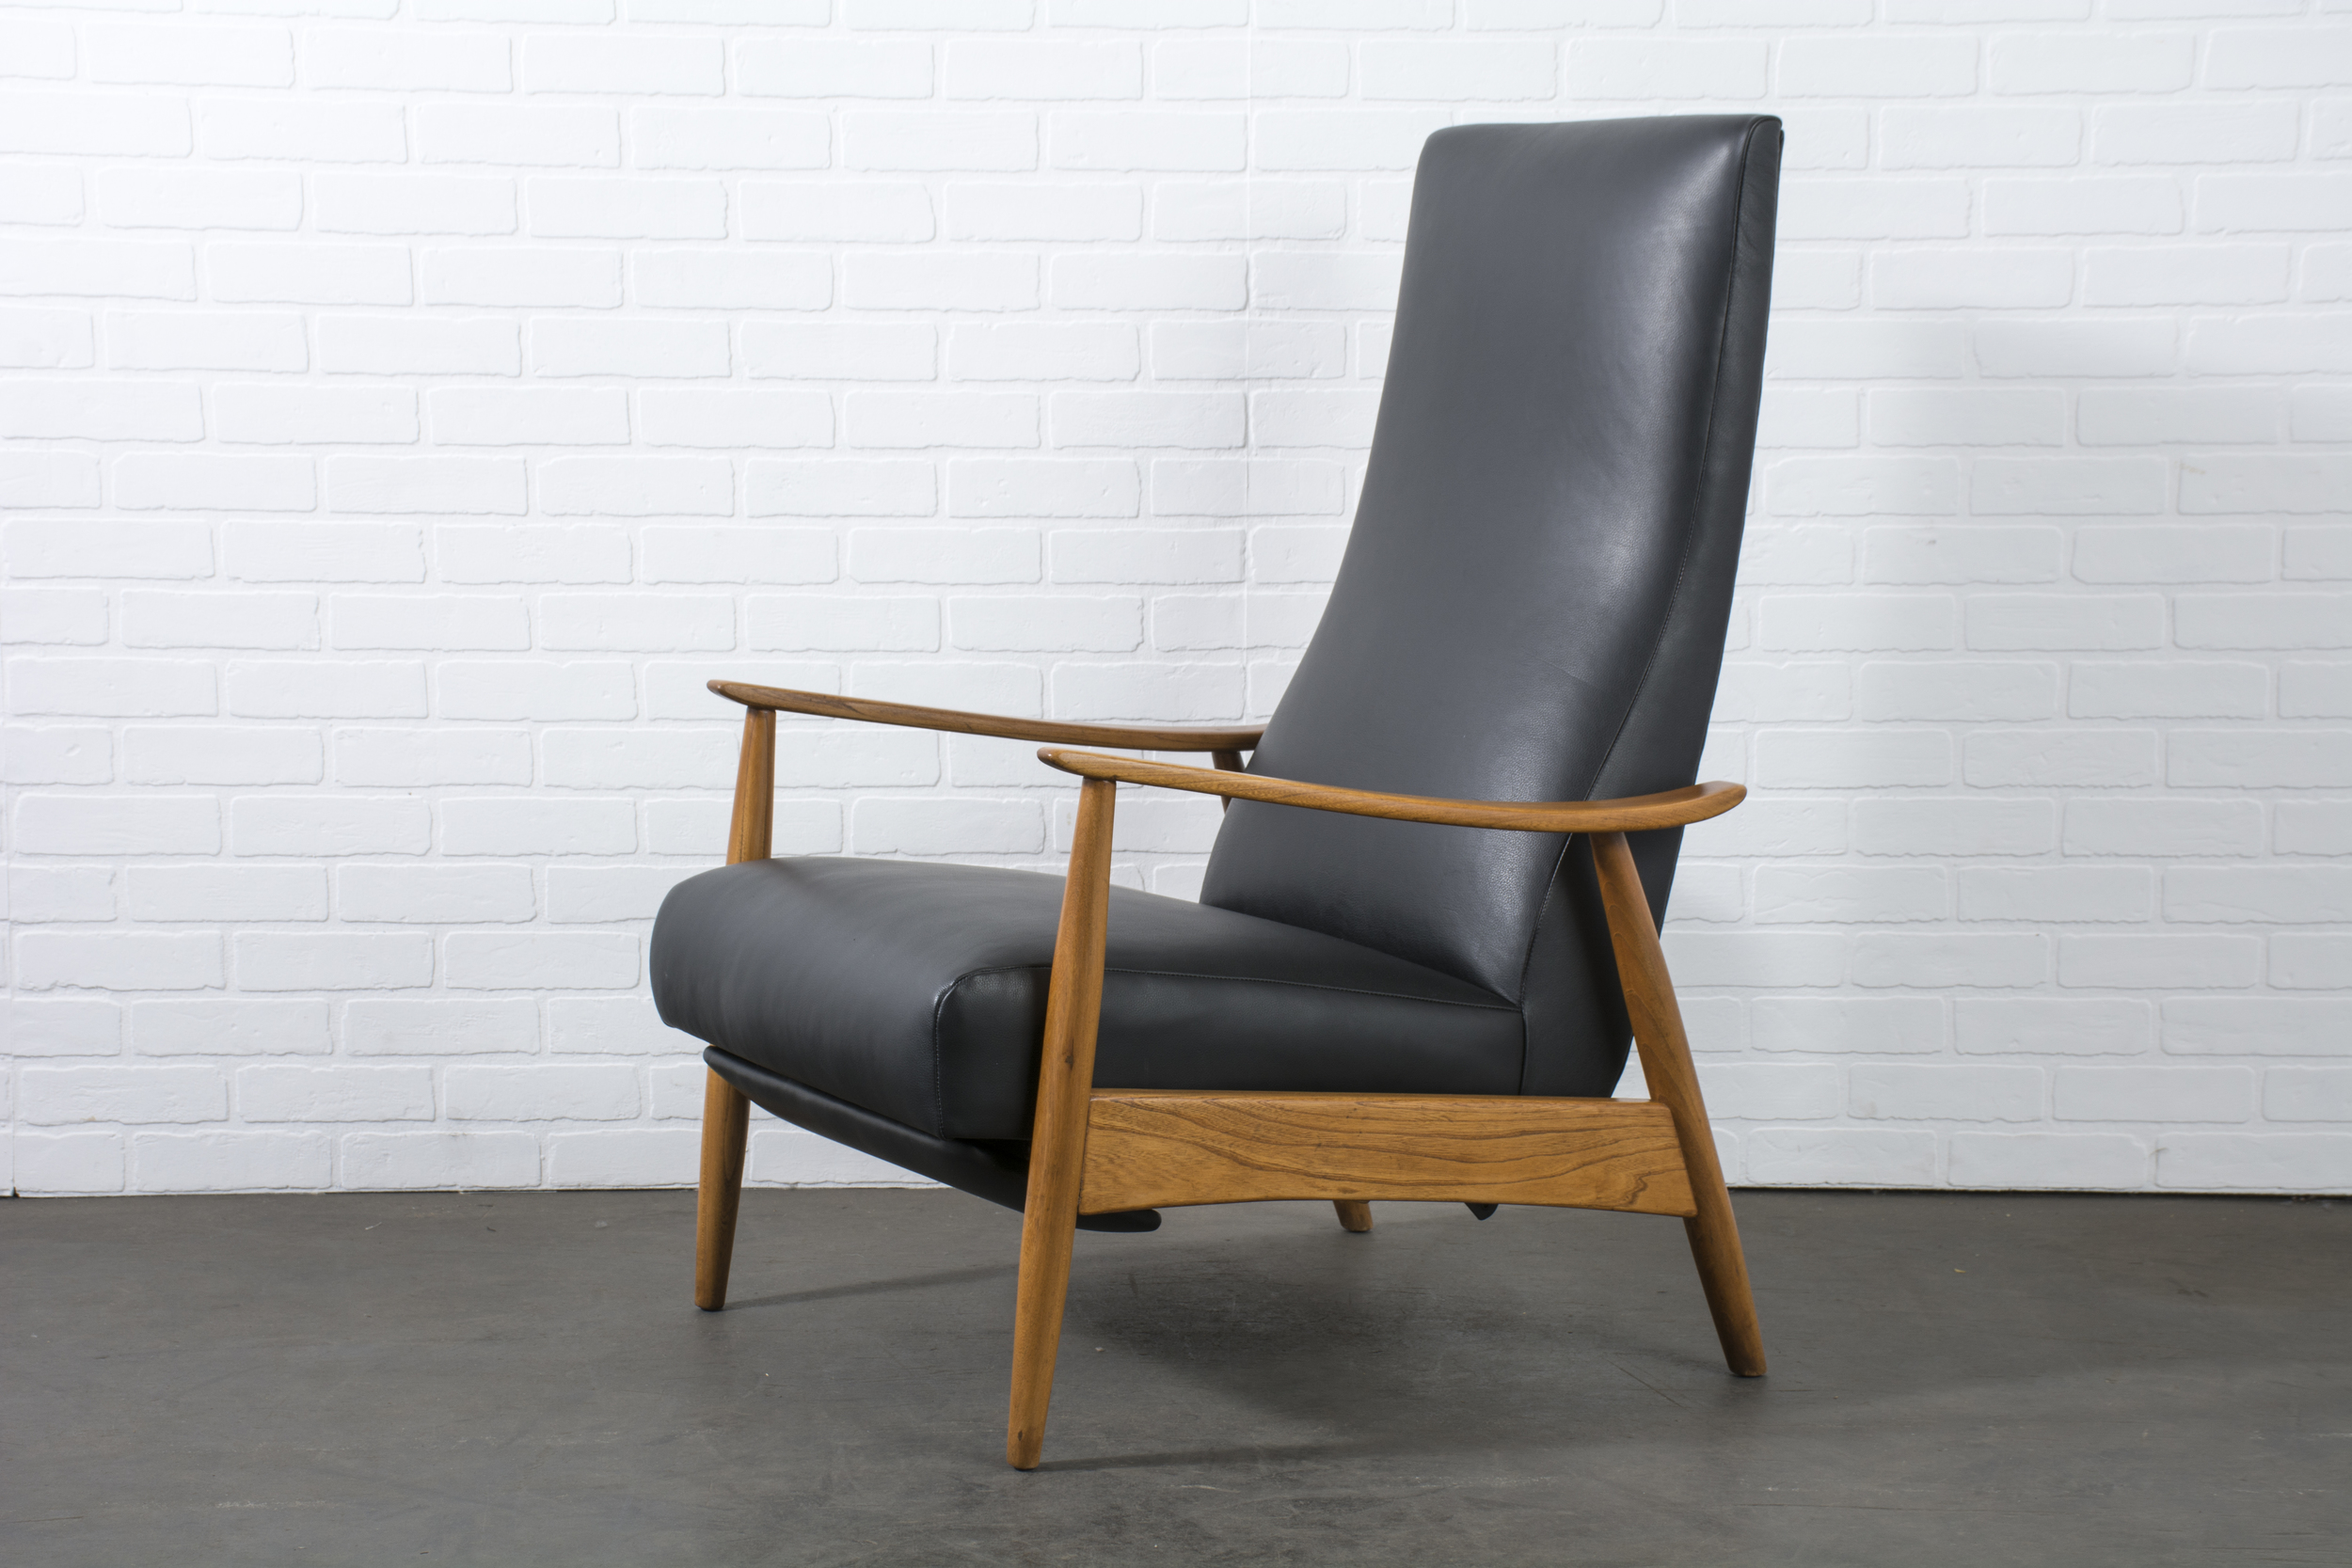 Copy of Vintage Milo Baughman Recliner